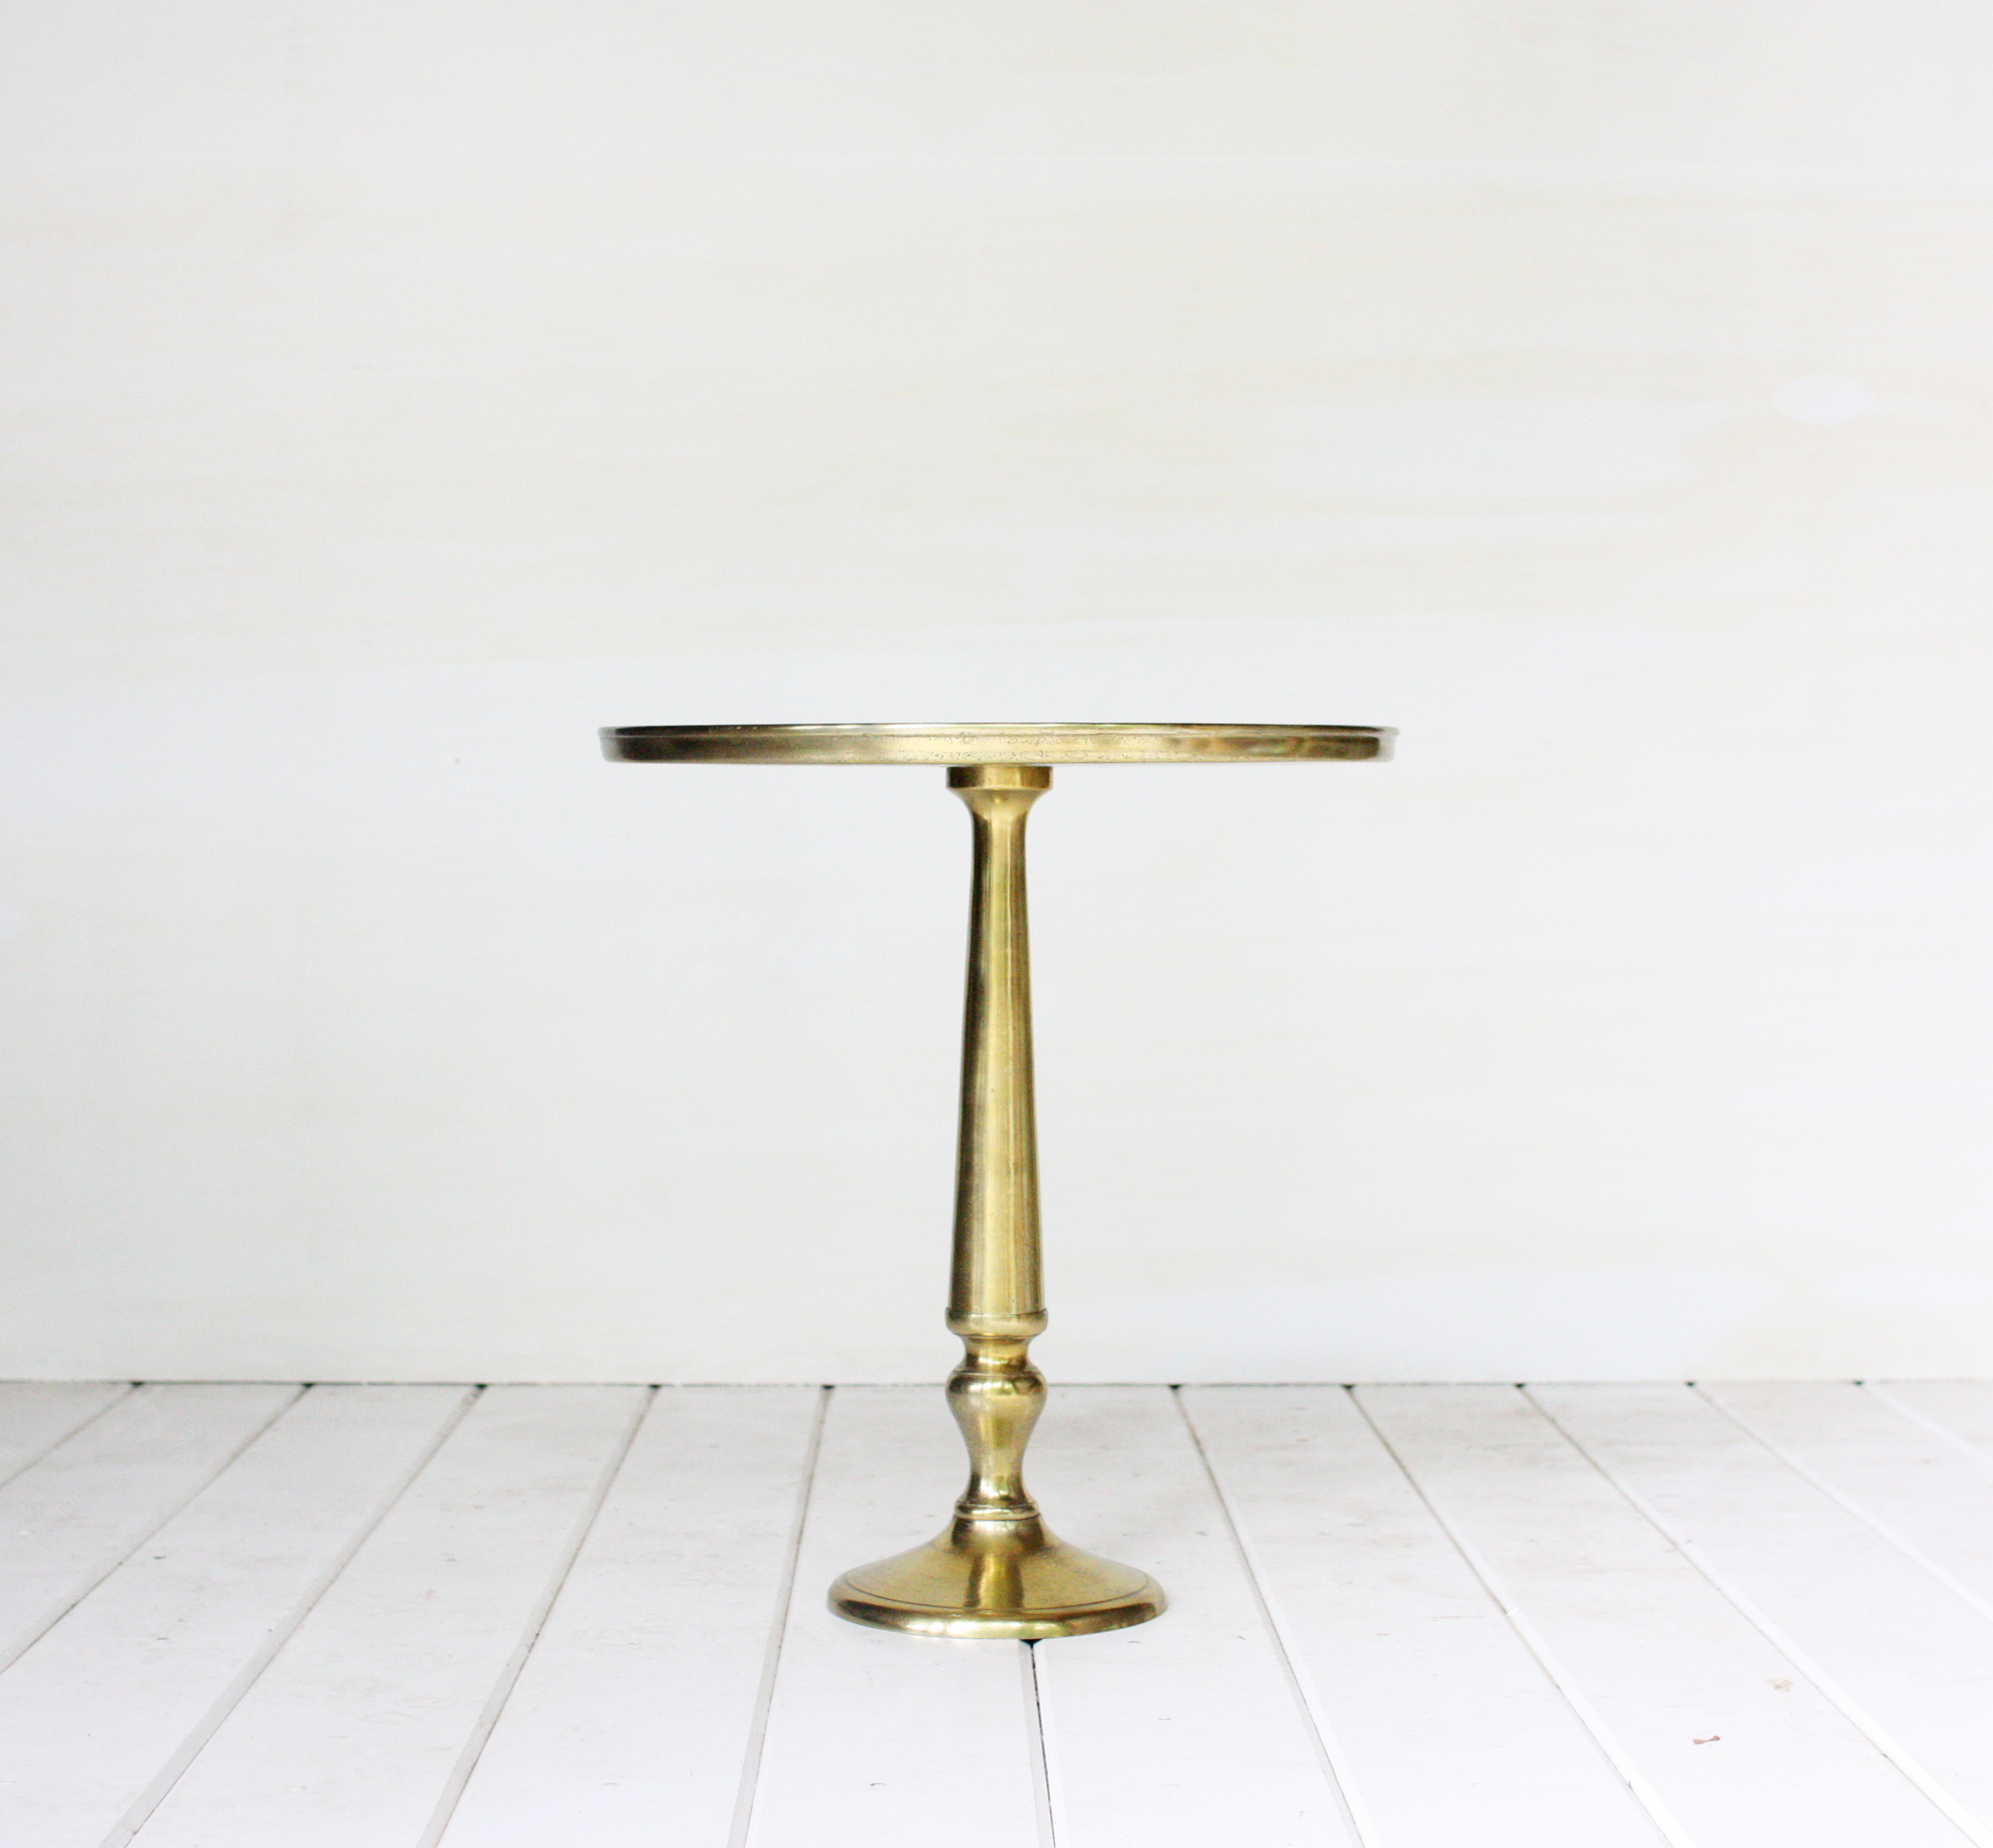 gold accent table vintage rentals goldaccenttable center cover entry for small spaces drum throne entryway with shoe storage crystal desk lamp front porch bench cement base